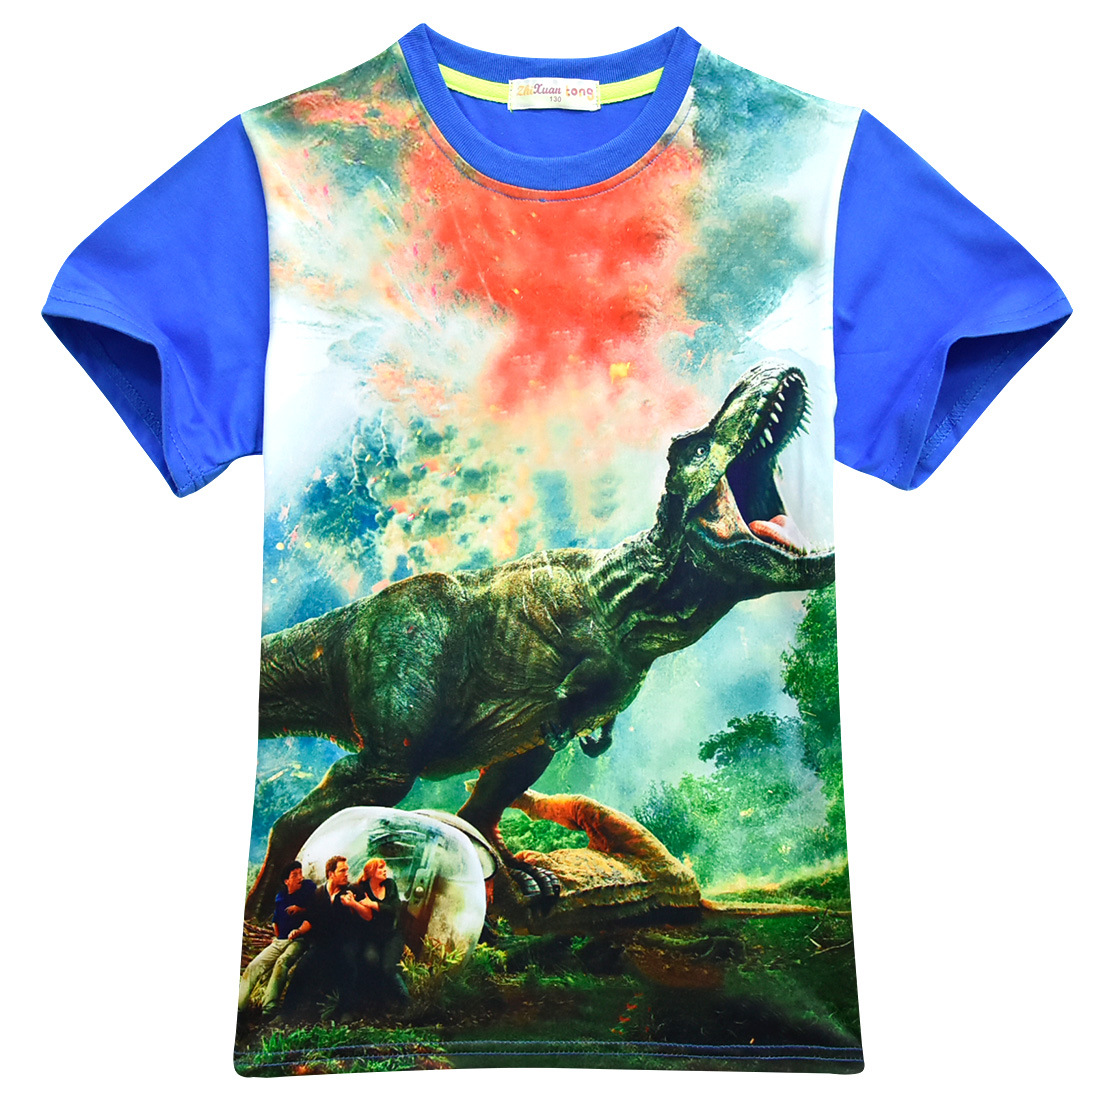 8dfb9c858 Boys 3D Dinosaur Printed t shirts Summer Tops Tees t-shirt girls clothing  Kids Boys Cute pattern Tshirt Teen 4 6 8 10 12 years